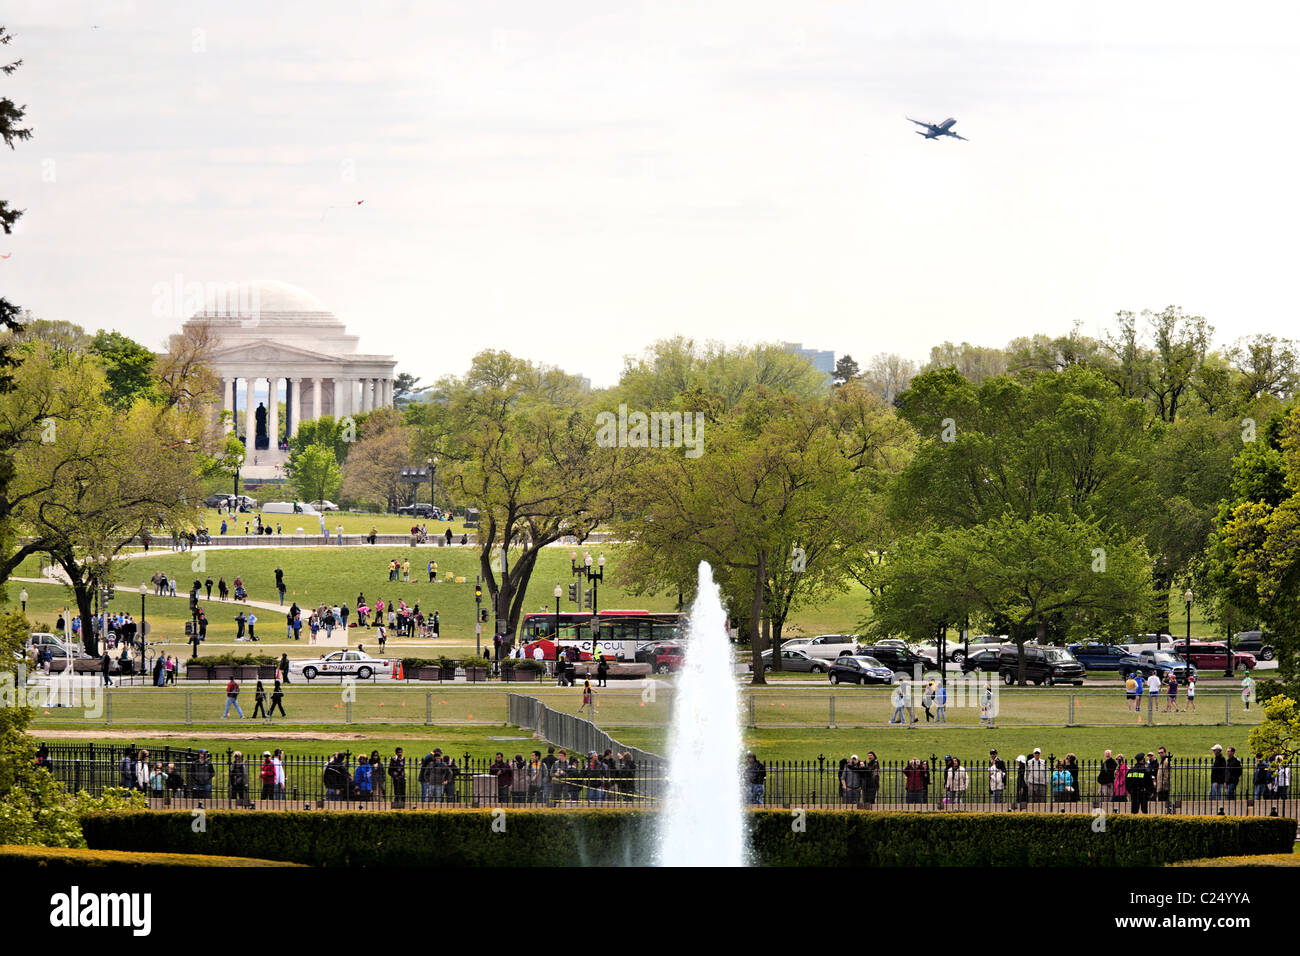 View from the White House towards Jefferson Memorial across The National Mall. A plane is approaching. Washington - Stock Image